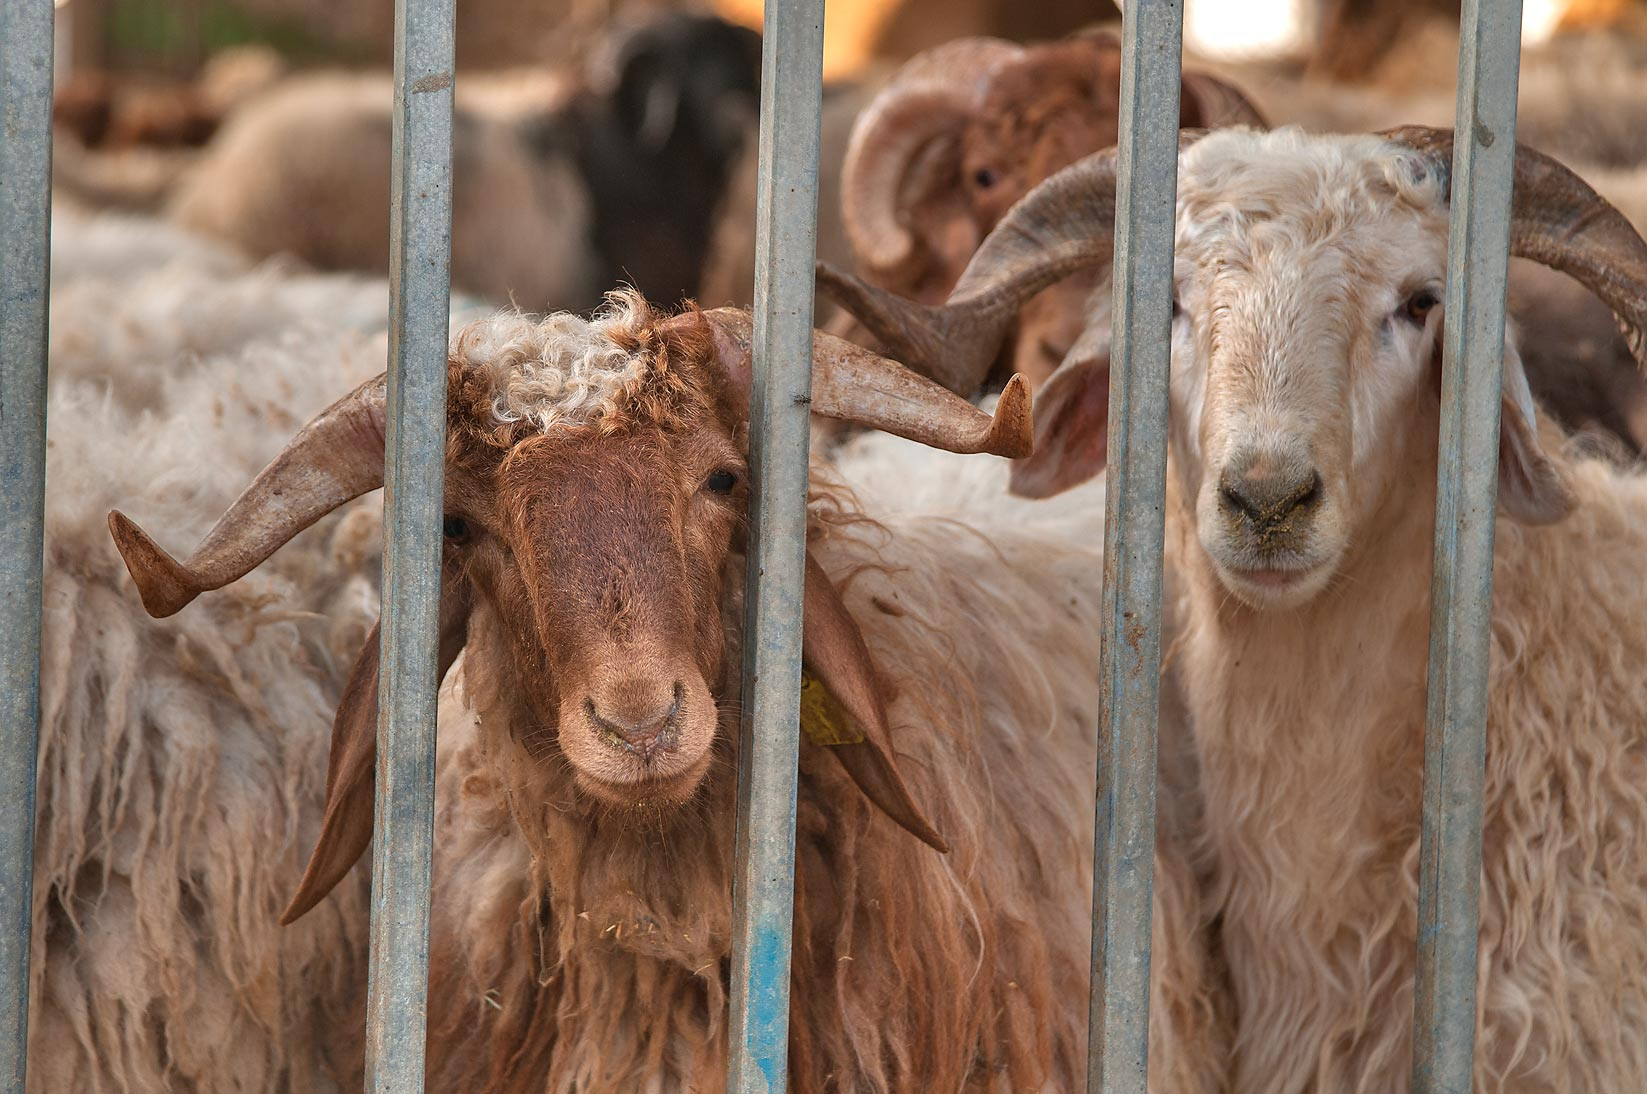 Sheep behind iron bars in Livestock Market, Wholesale Markets area. Doha, Qatar